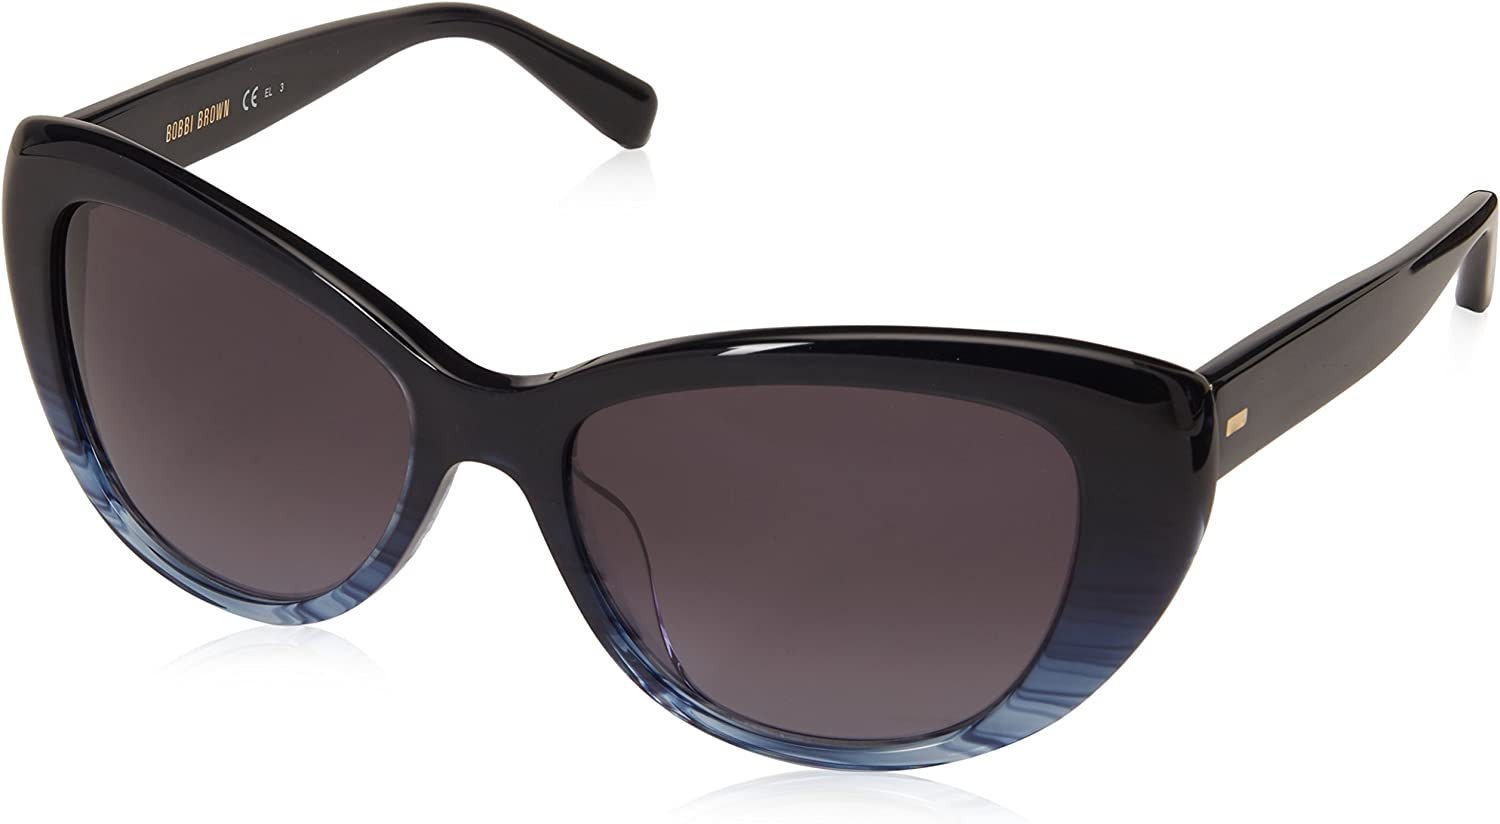 Bobbi Brown Women's The Susana s Square Sunglasses, bluee Horn, 54 mm